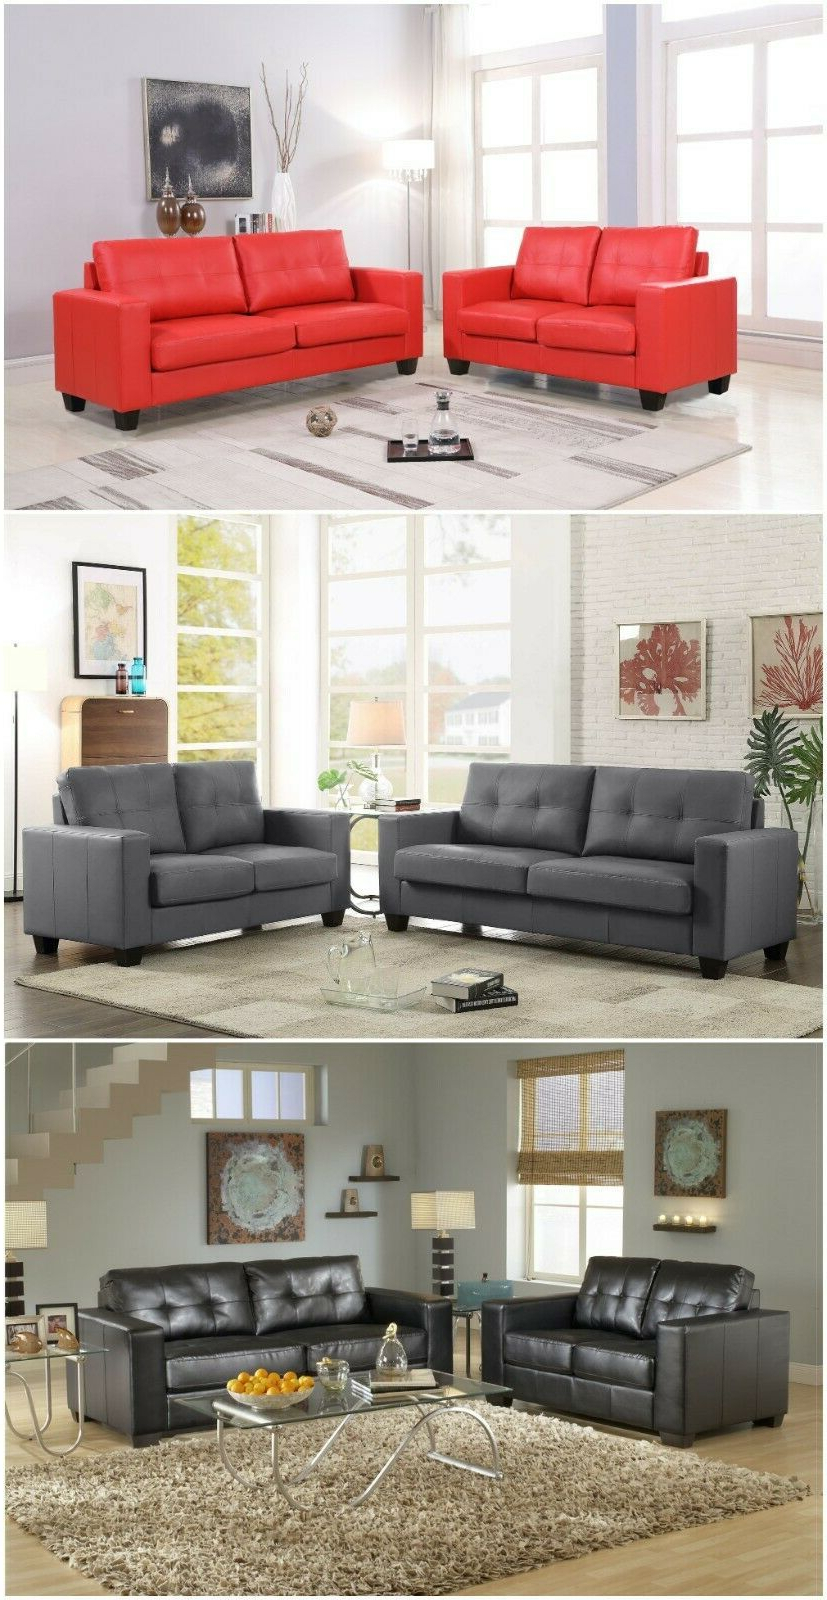 Navigator Manual Reclining Sofas Within Popular Pu Leather Living Room Sets – Dlivingrooms (View 13 of 15)